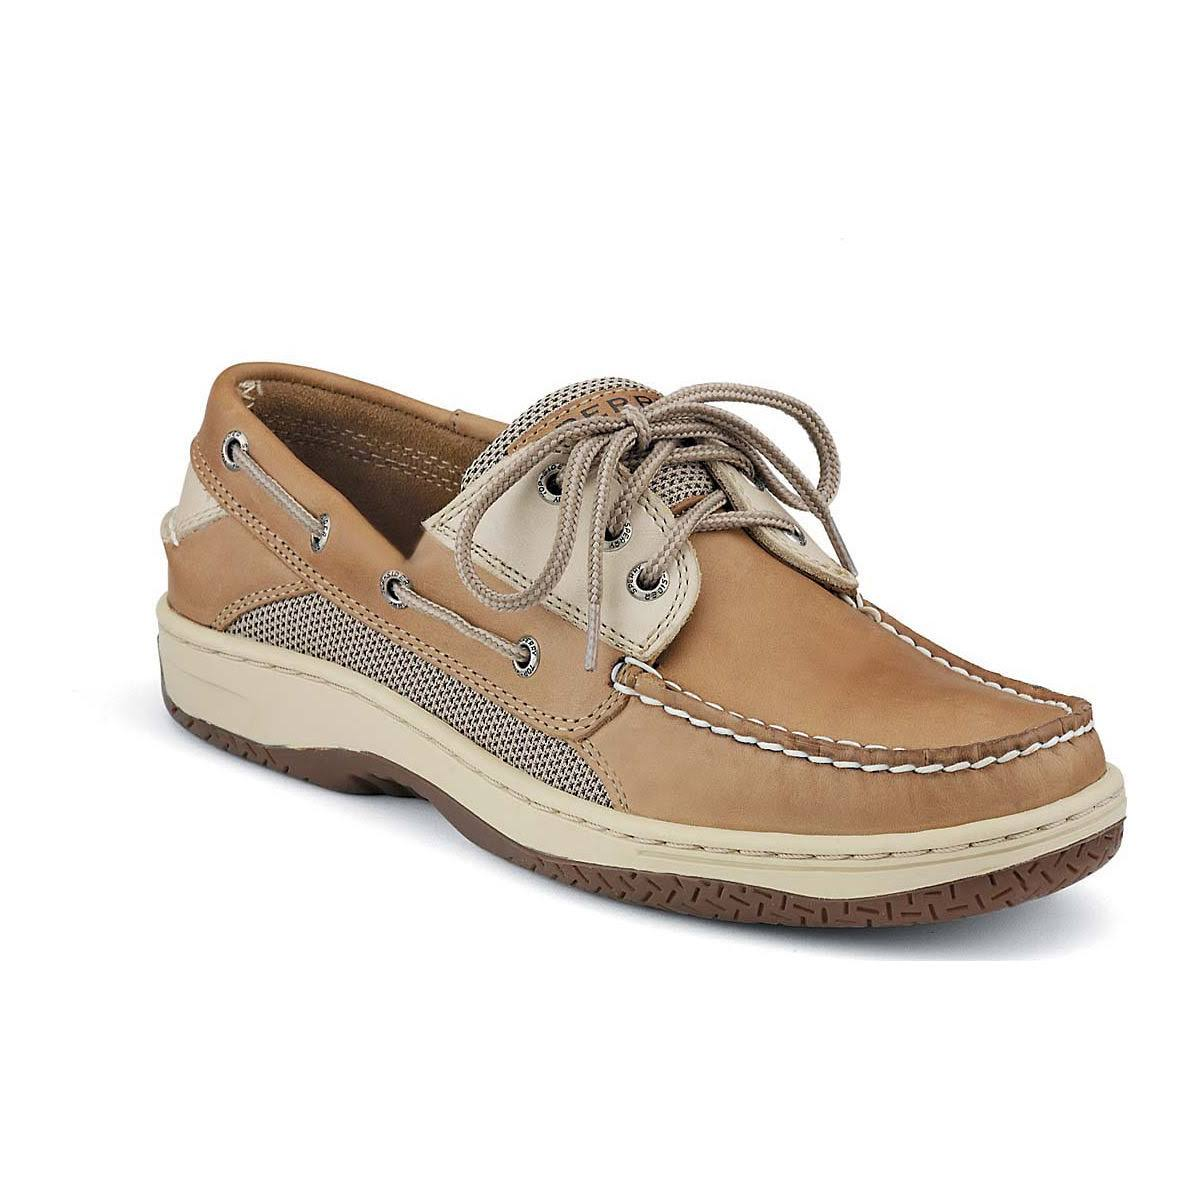 Sperry Men's Billfish 3-Eye Boat Shoe - Tan/Beige